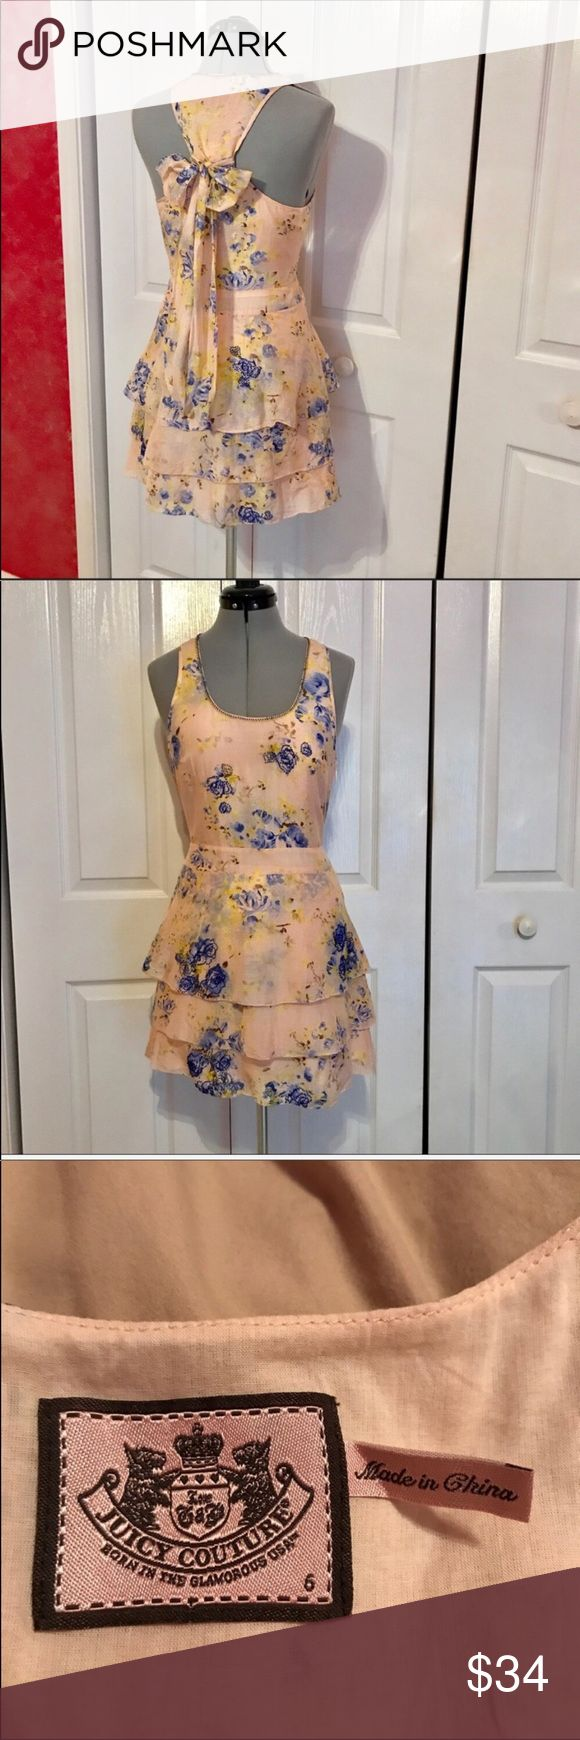 """Juicy couture dress Juicy couture dress. Blush with floral design. Tiered skirt. 76% cotton 24% silk. Racer style back with large bow. Approximate bust measurement is 36"""". Hips 38"""". Juicy Couture Dresses"""